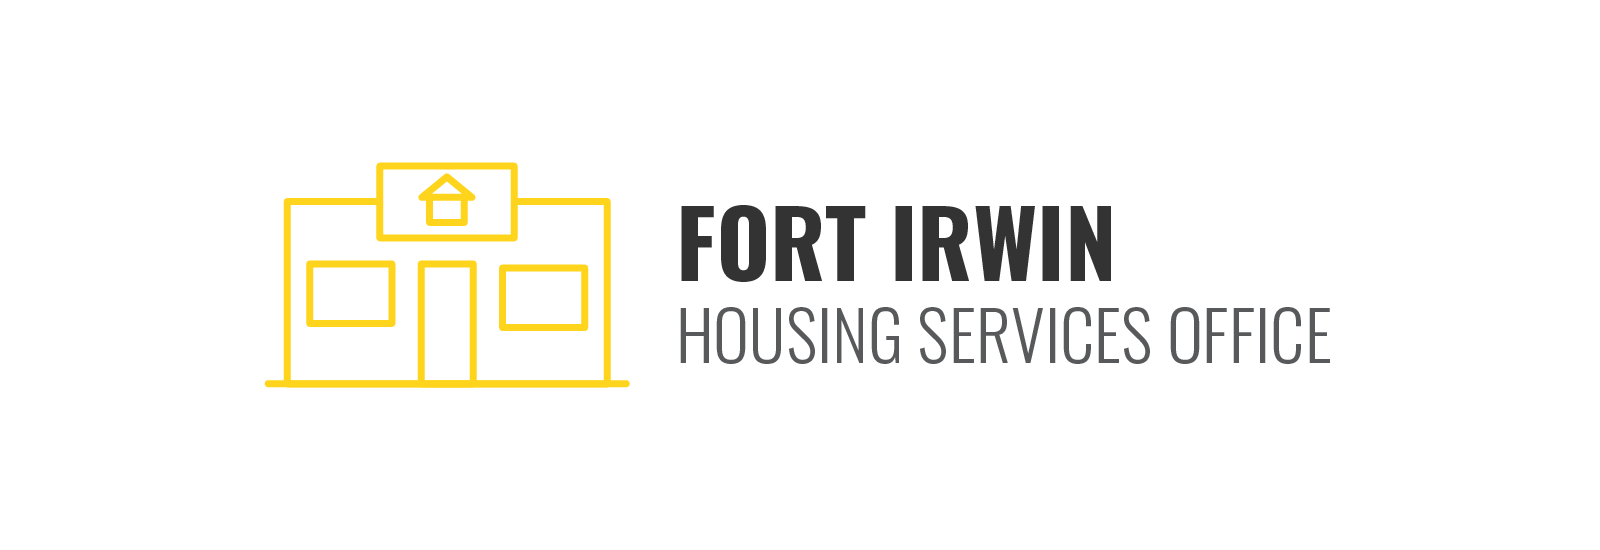 Fort Irwin Housing Services Office